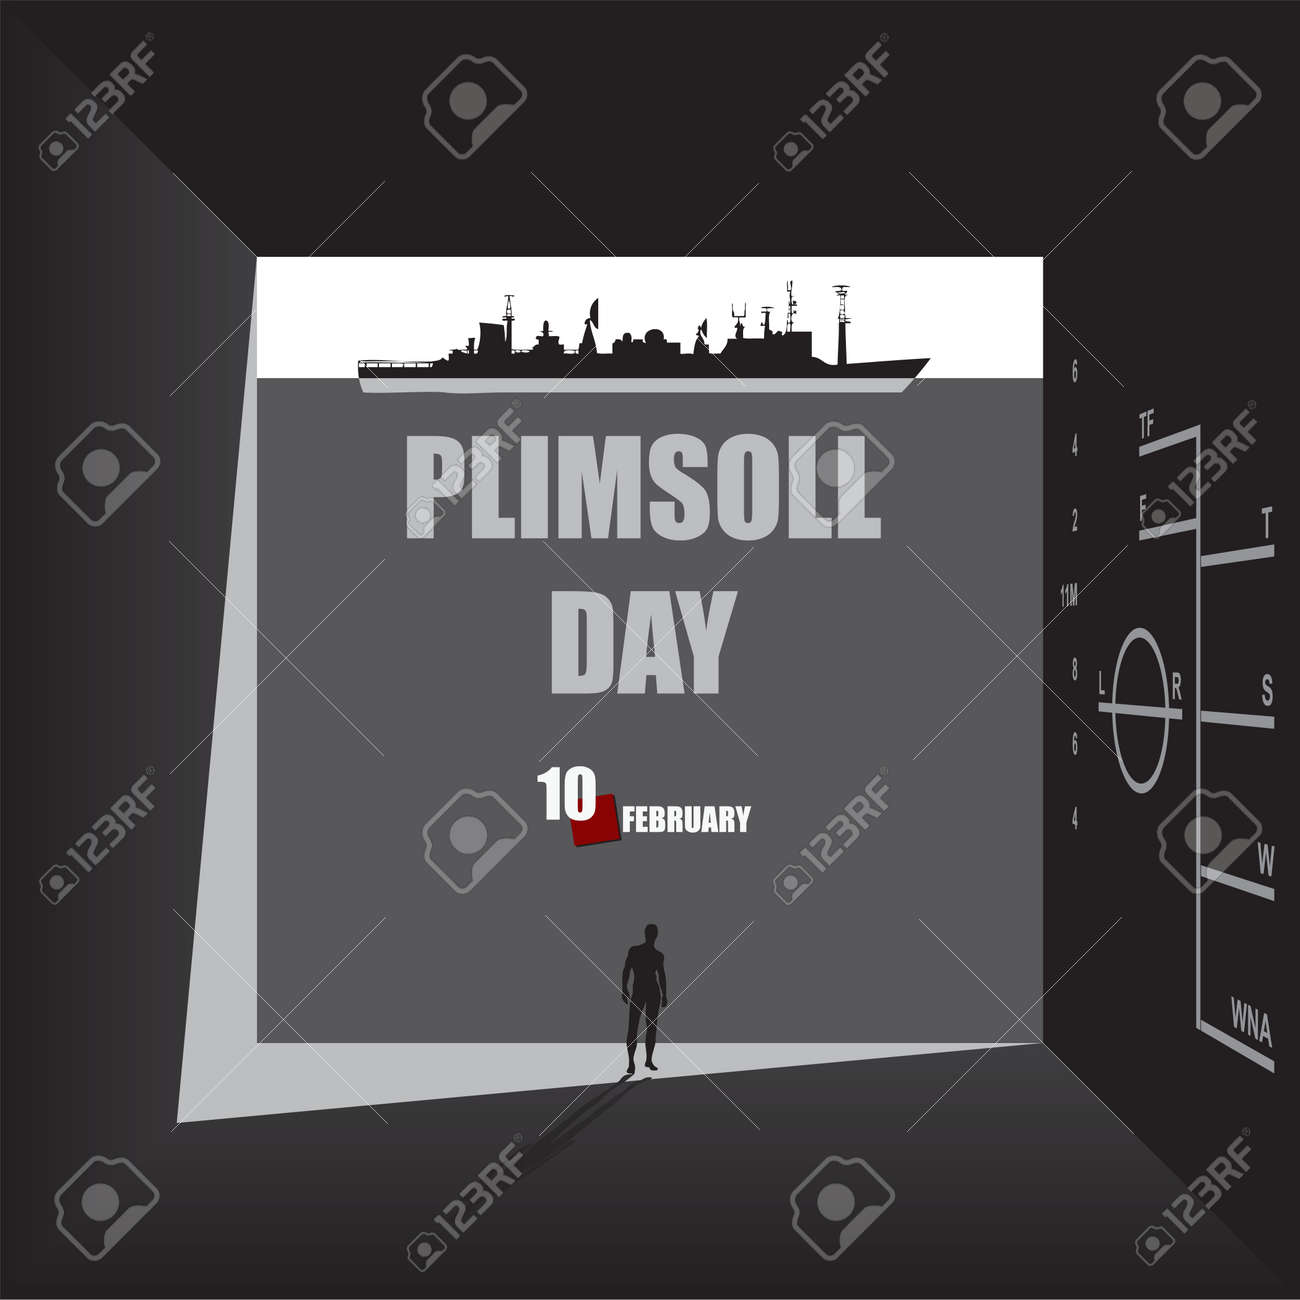 Passage in the thickness of the wall to Plimsoll Day - 163869001